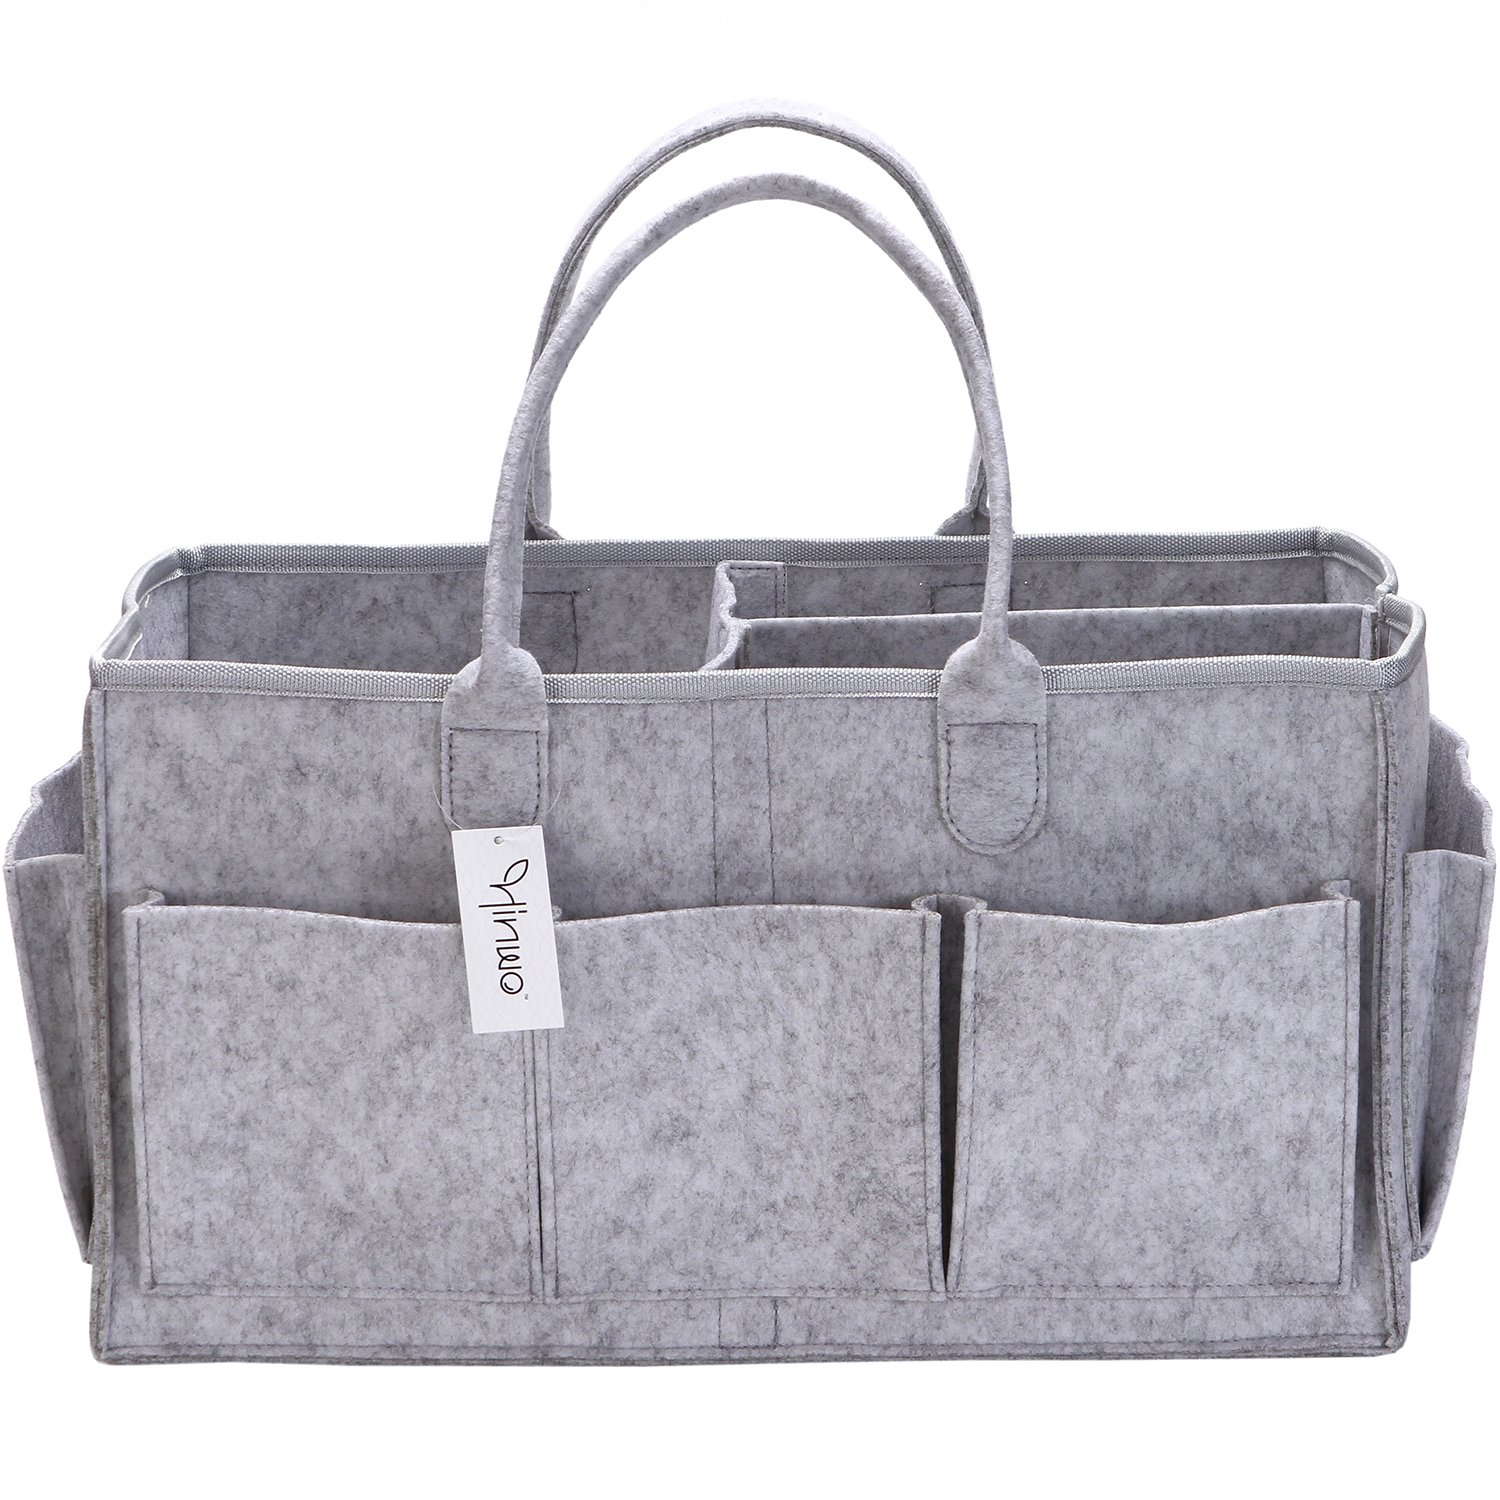 Hinwo Baby Felt Diaper Caddy 3-Compartment Infant Nursery Tote Storage Bin Portable Car Organizer Newborn Shower Gift Basket with Detachable Divider and 8 Side Pockets for Diapers & Wipes, Grey HWSB0010A